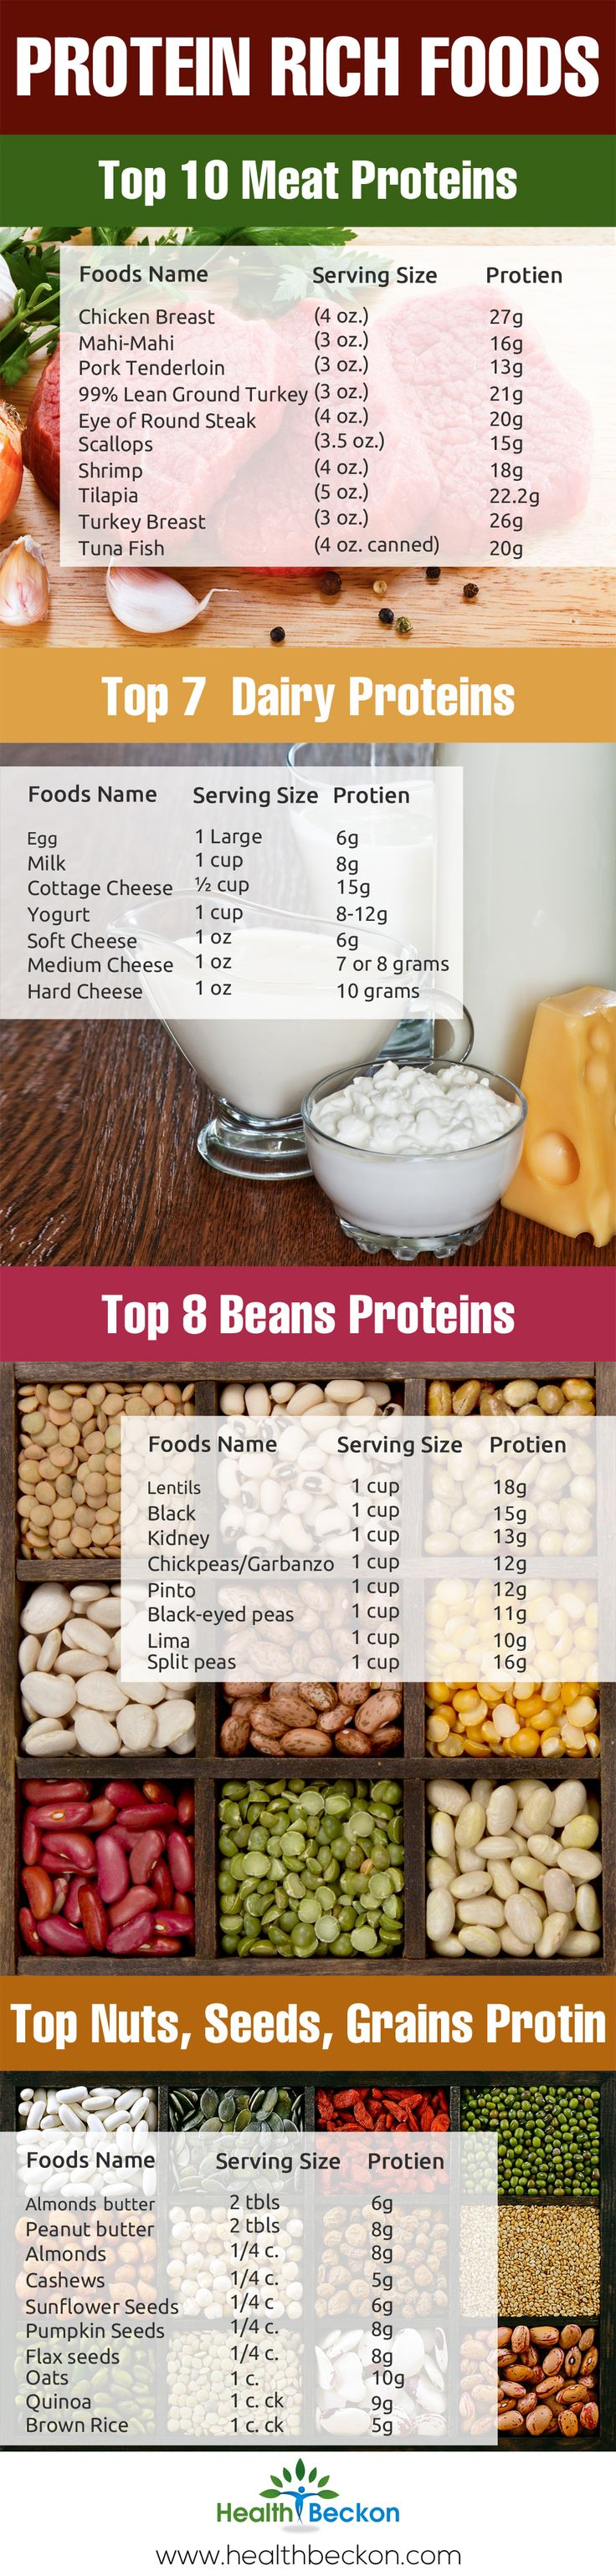 High Protein Foods With Low Carbs List